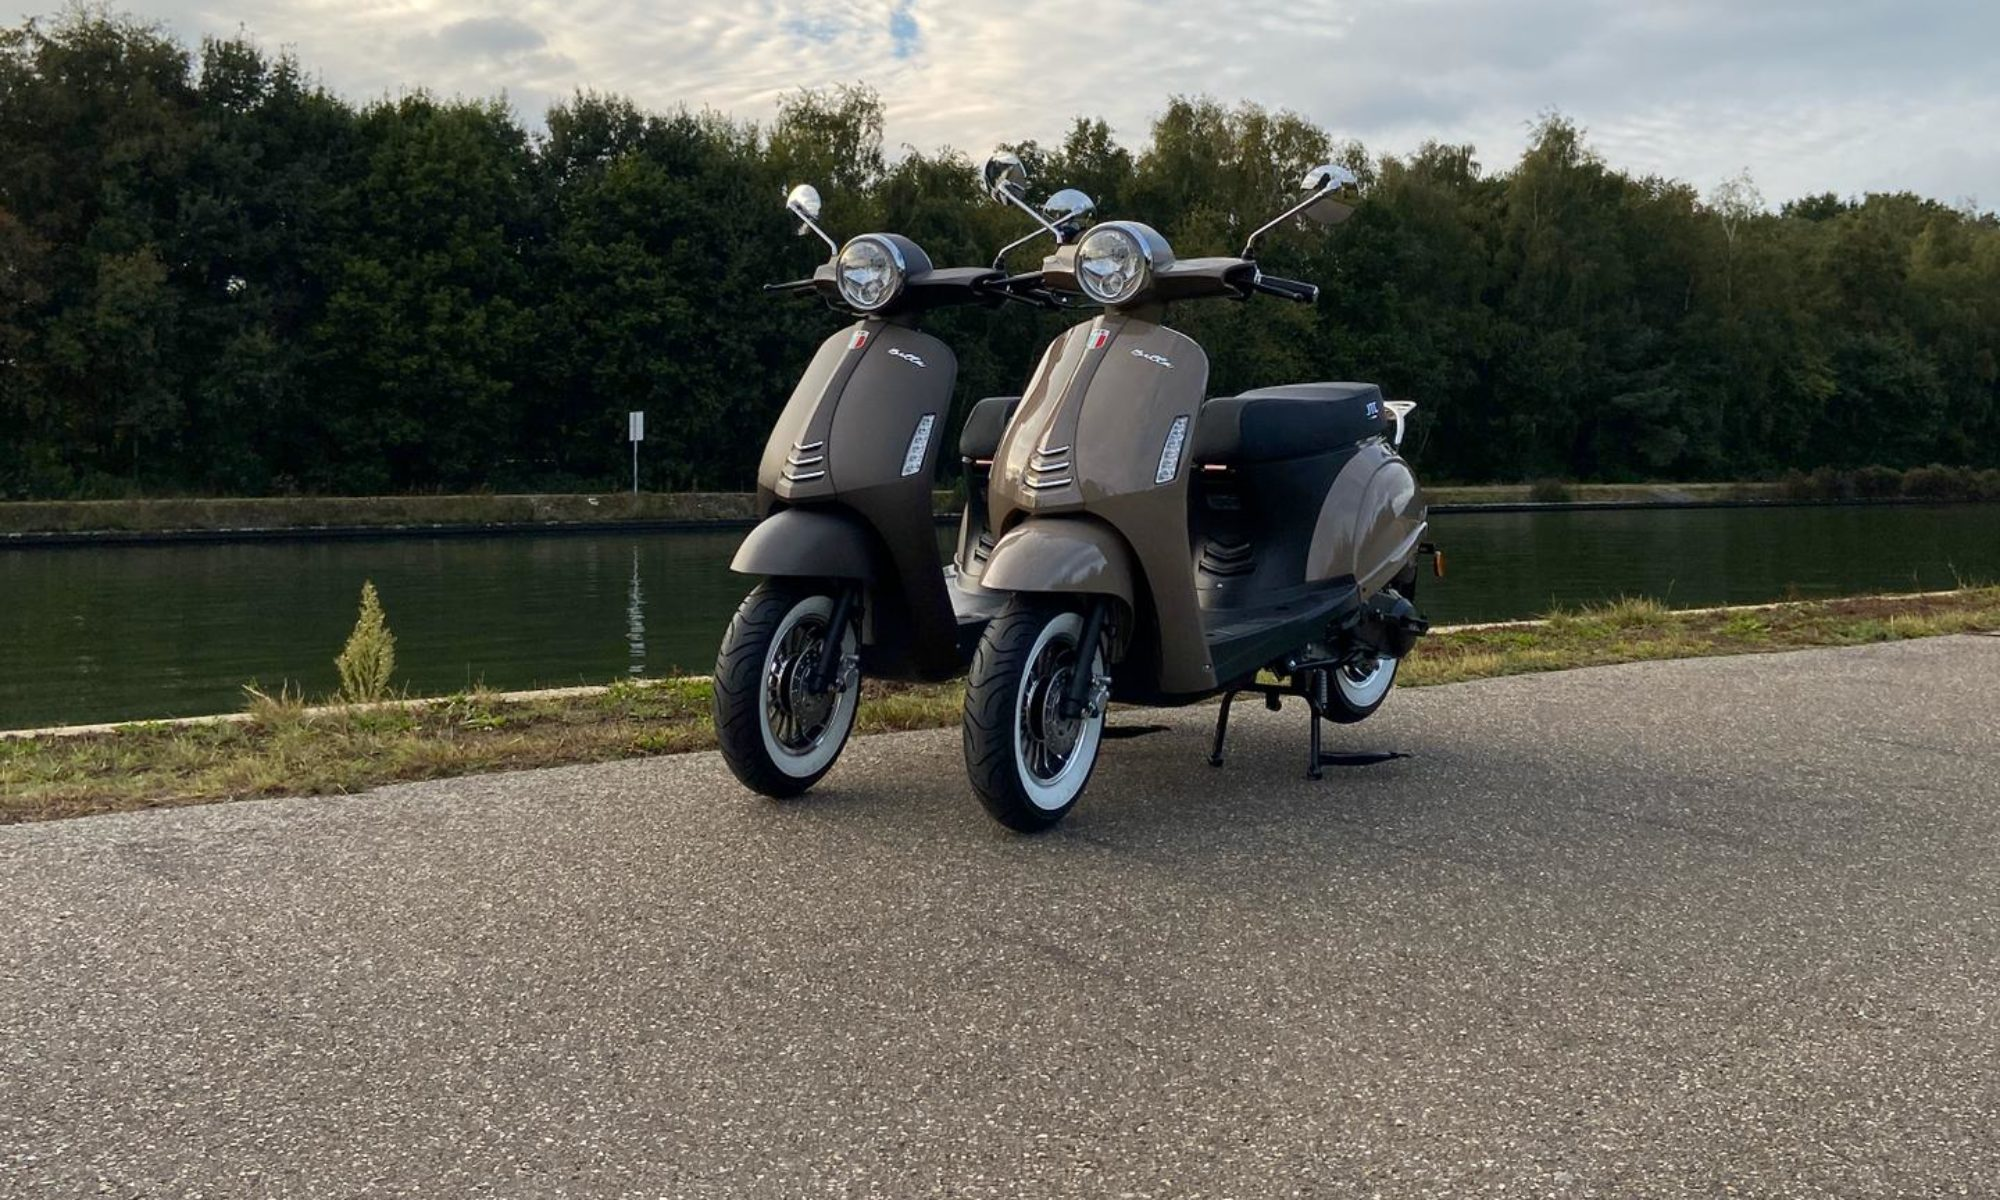 JTC Scooters